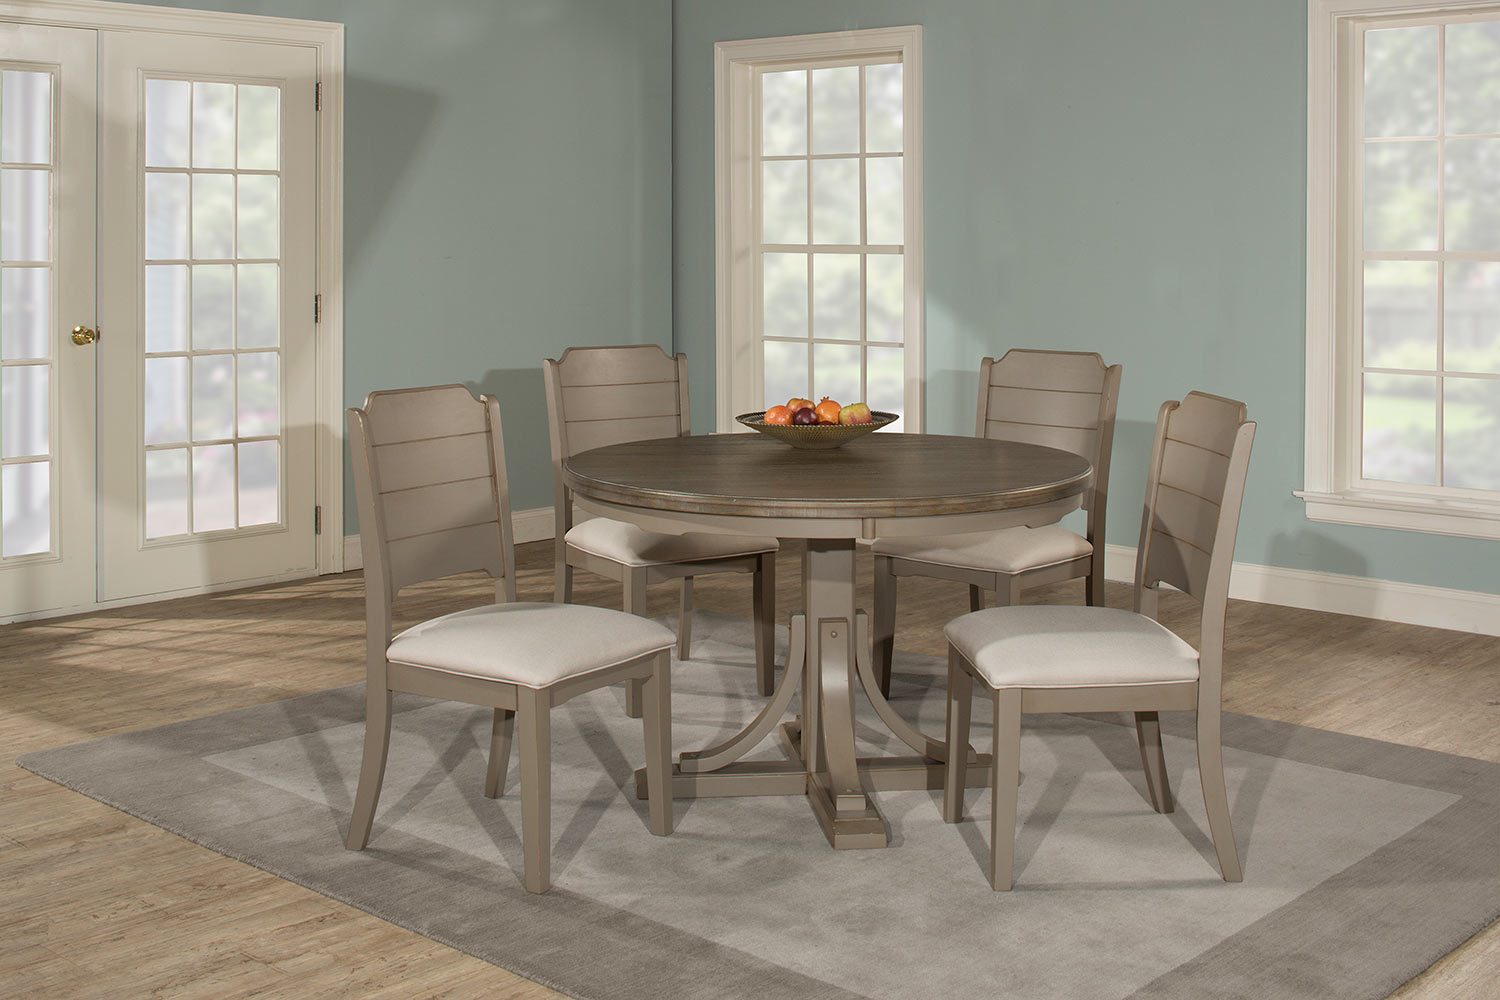 Hillsdale Clarion 5-Piece Round Dining Set with Side Chairs - Gray - Fog Fabric